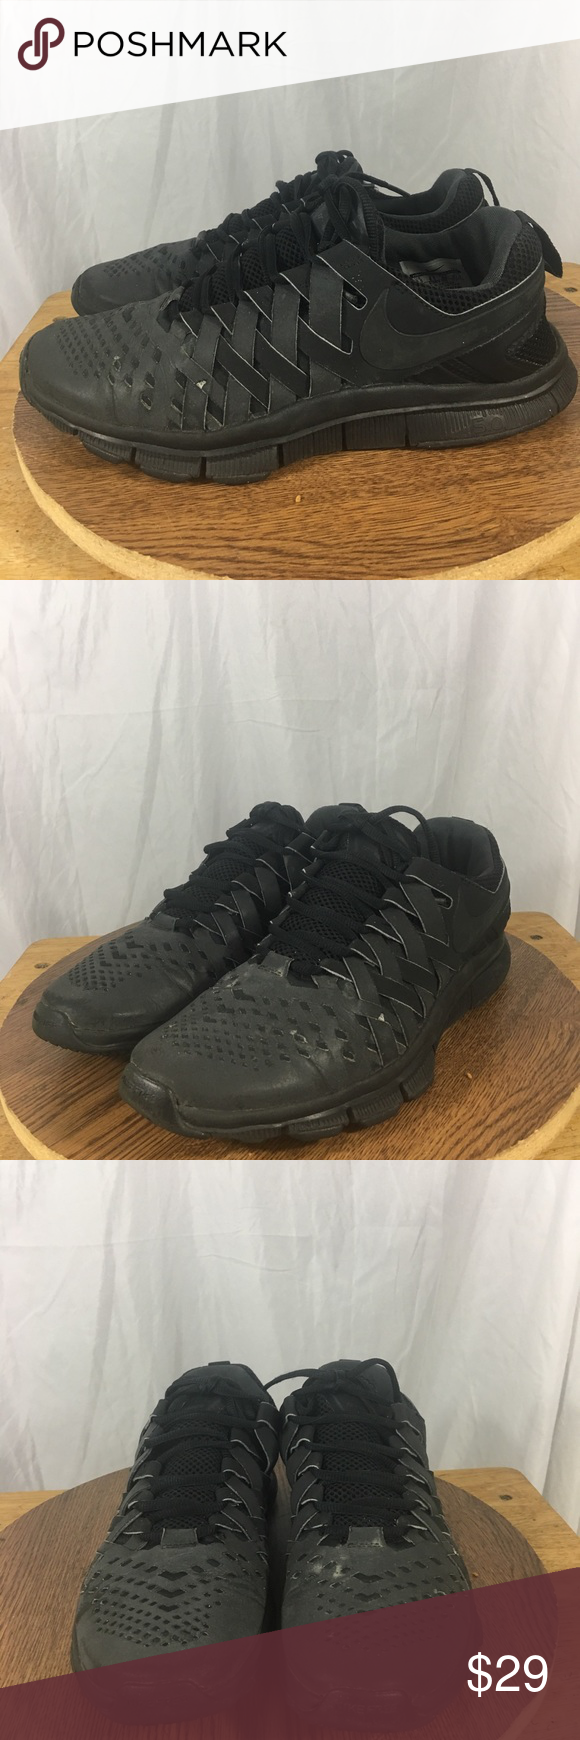 154f7e685866 Nike free trainer 5.0 men s running shoes sz 9.5 Preowned Nike free trainer  5.0 men s running shoes sz 9.5 in triple black. Shoes are in Preowned  condition ...